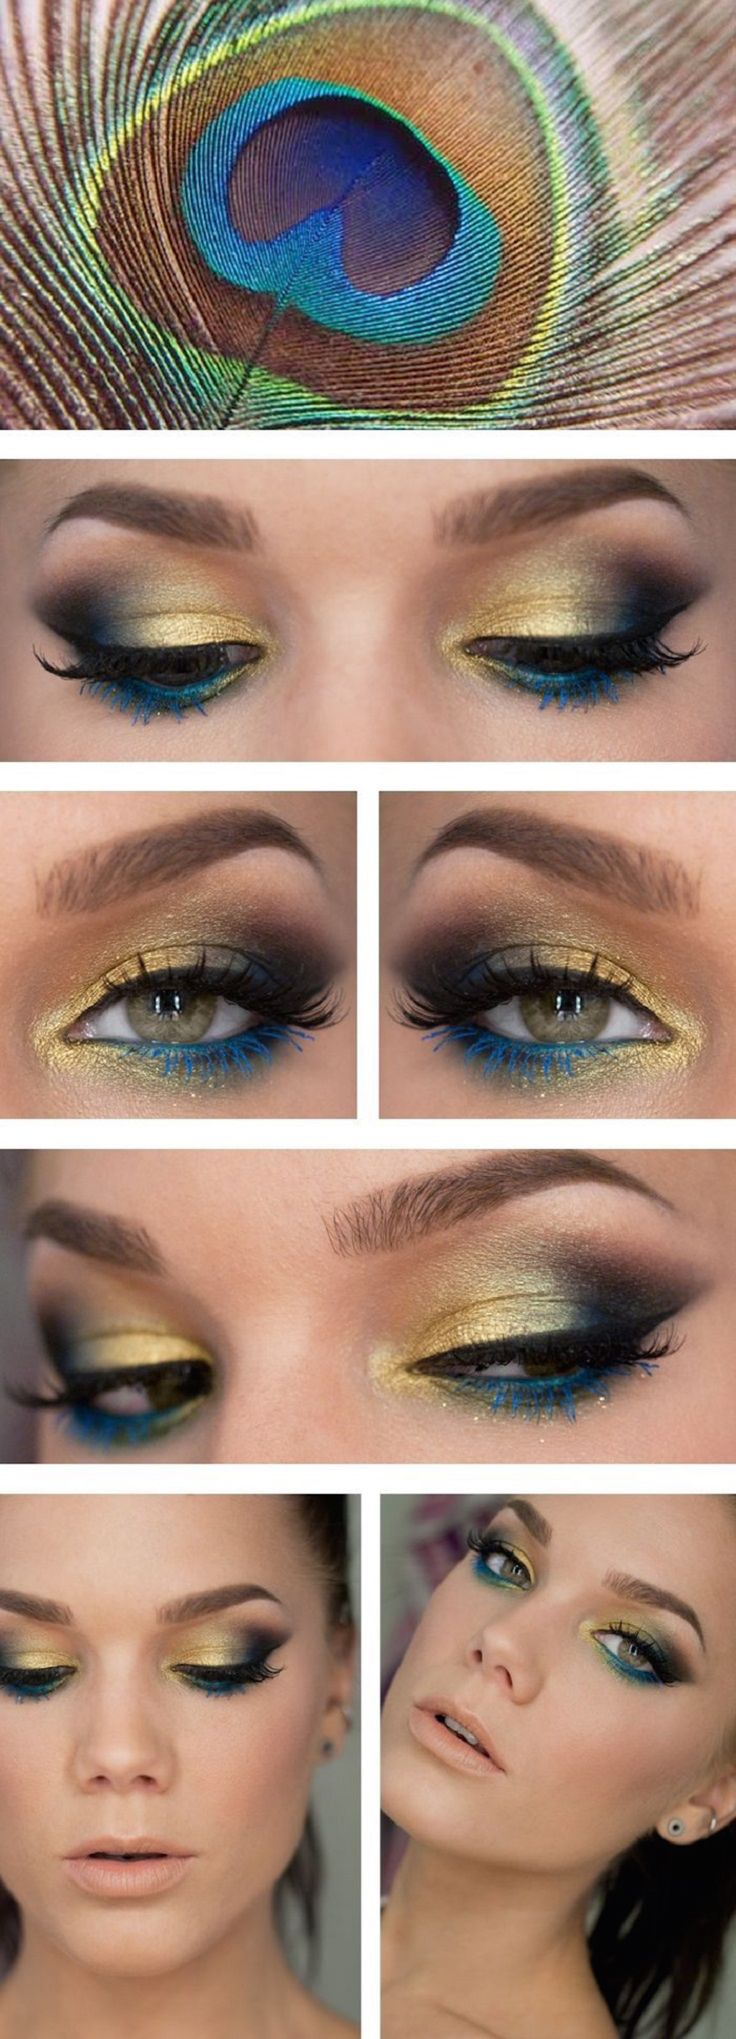 Smokey eye peacock inspired makeup